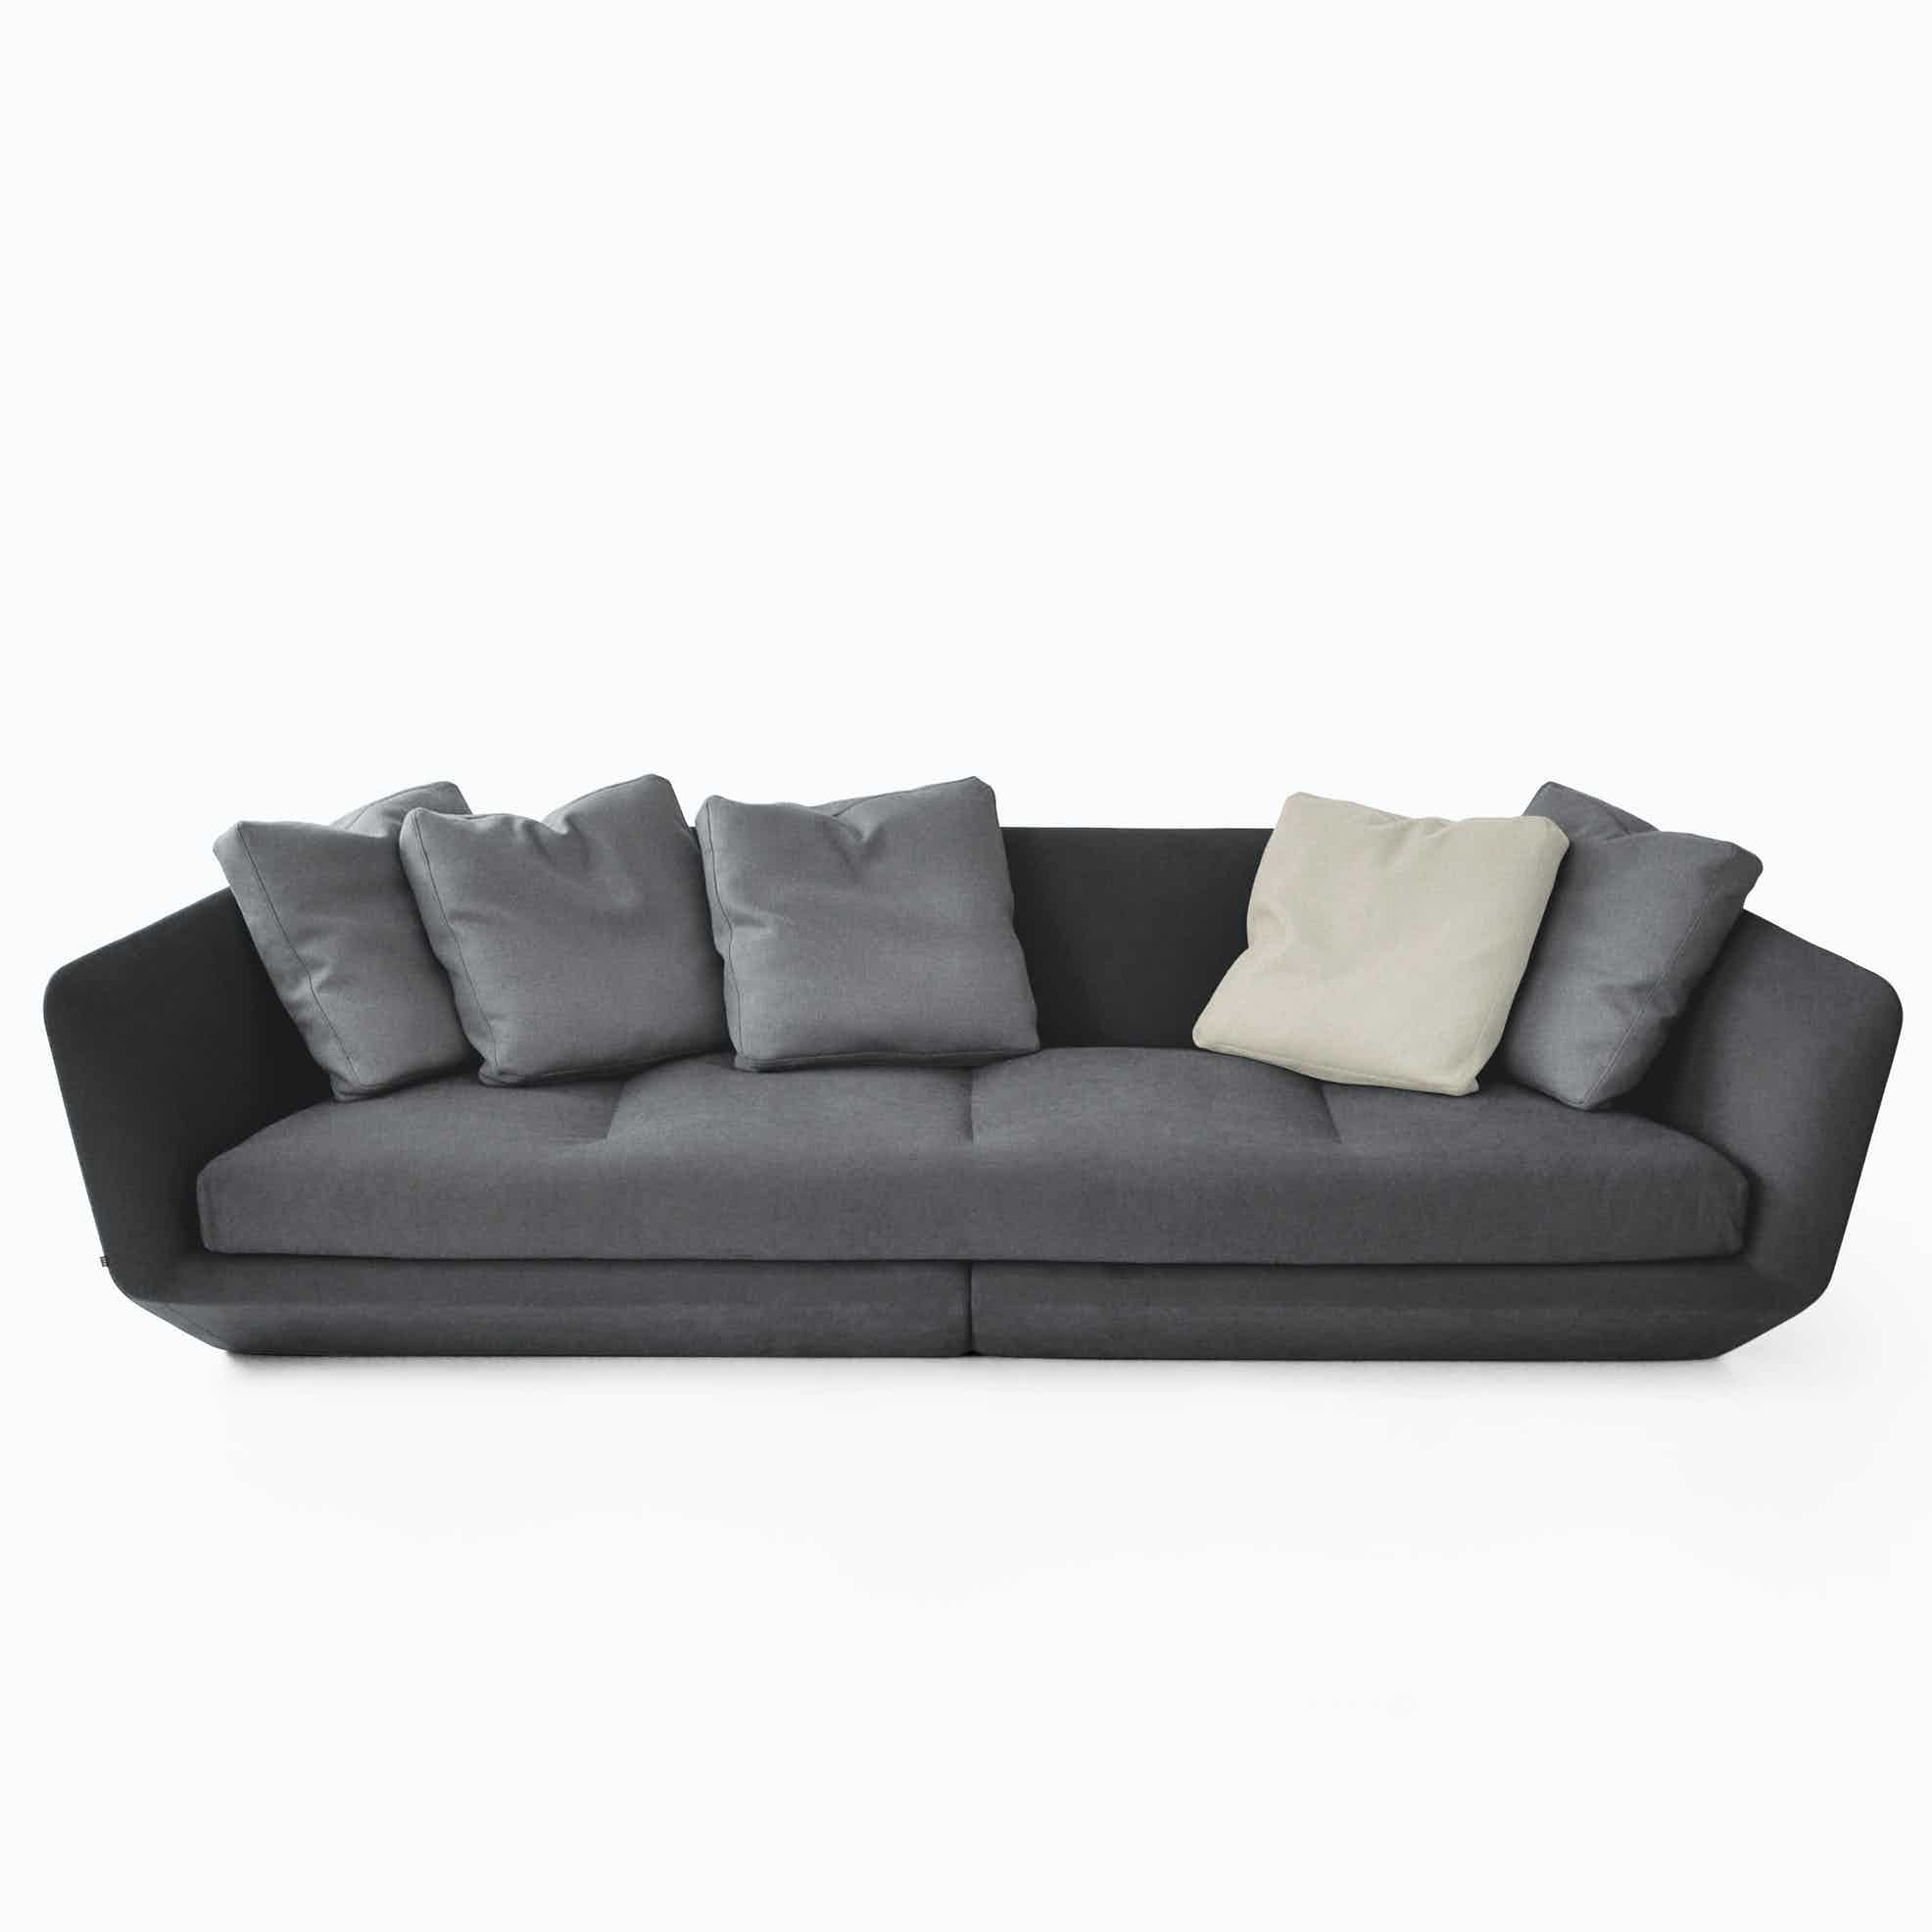 Bensen furniture aura sofa haute living